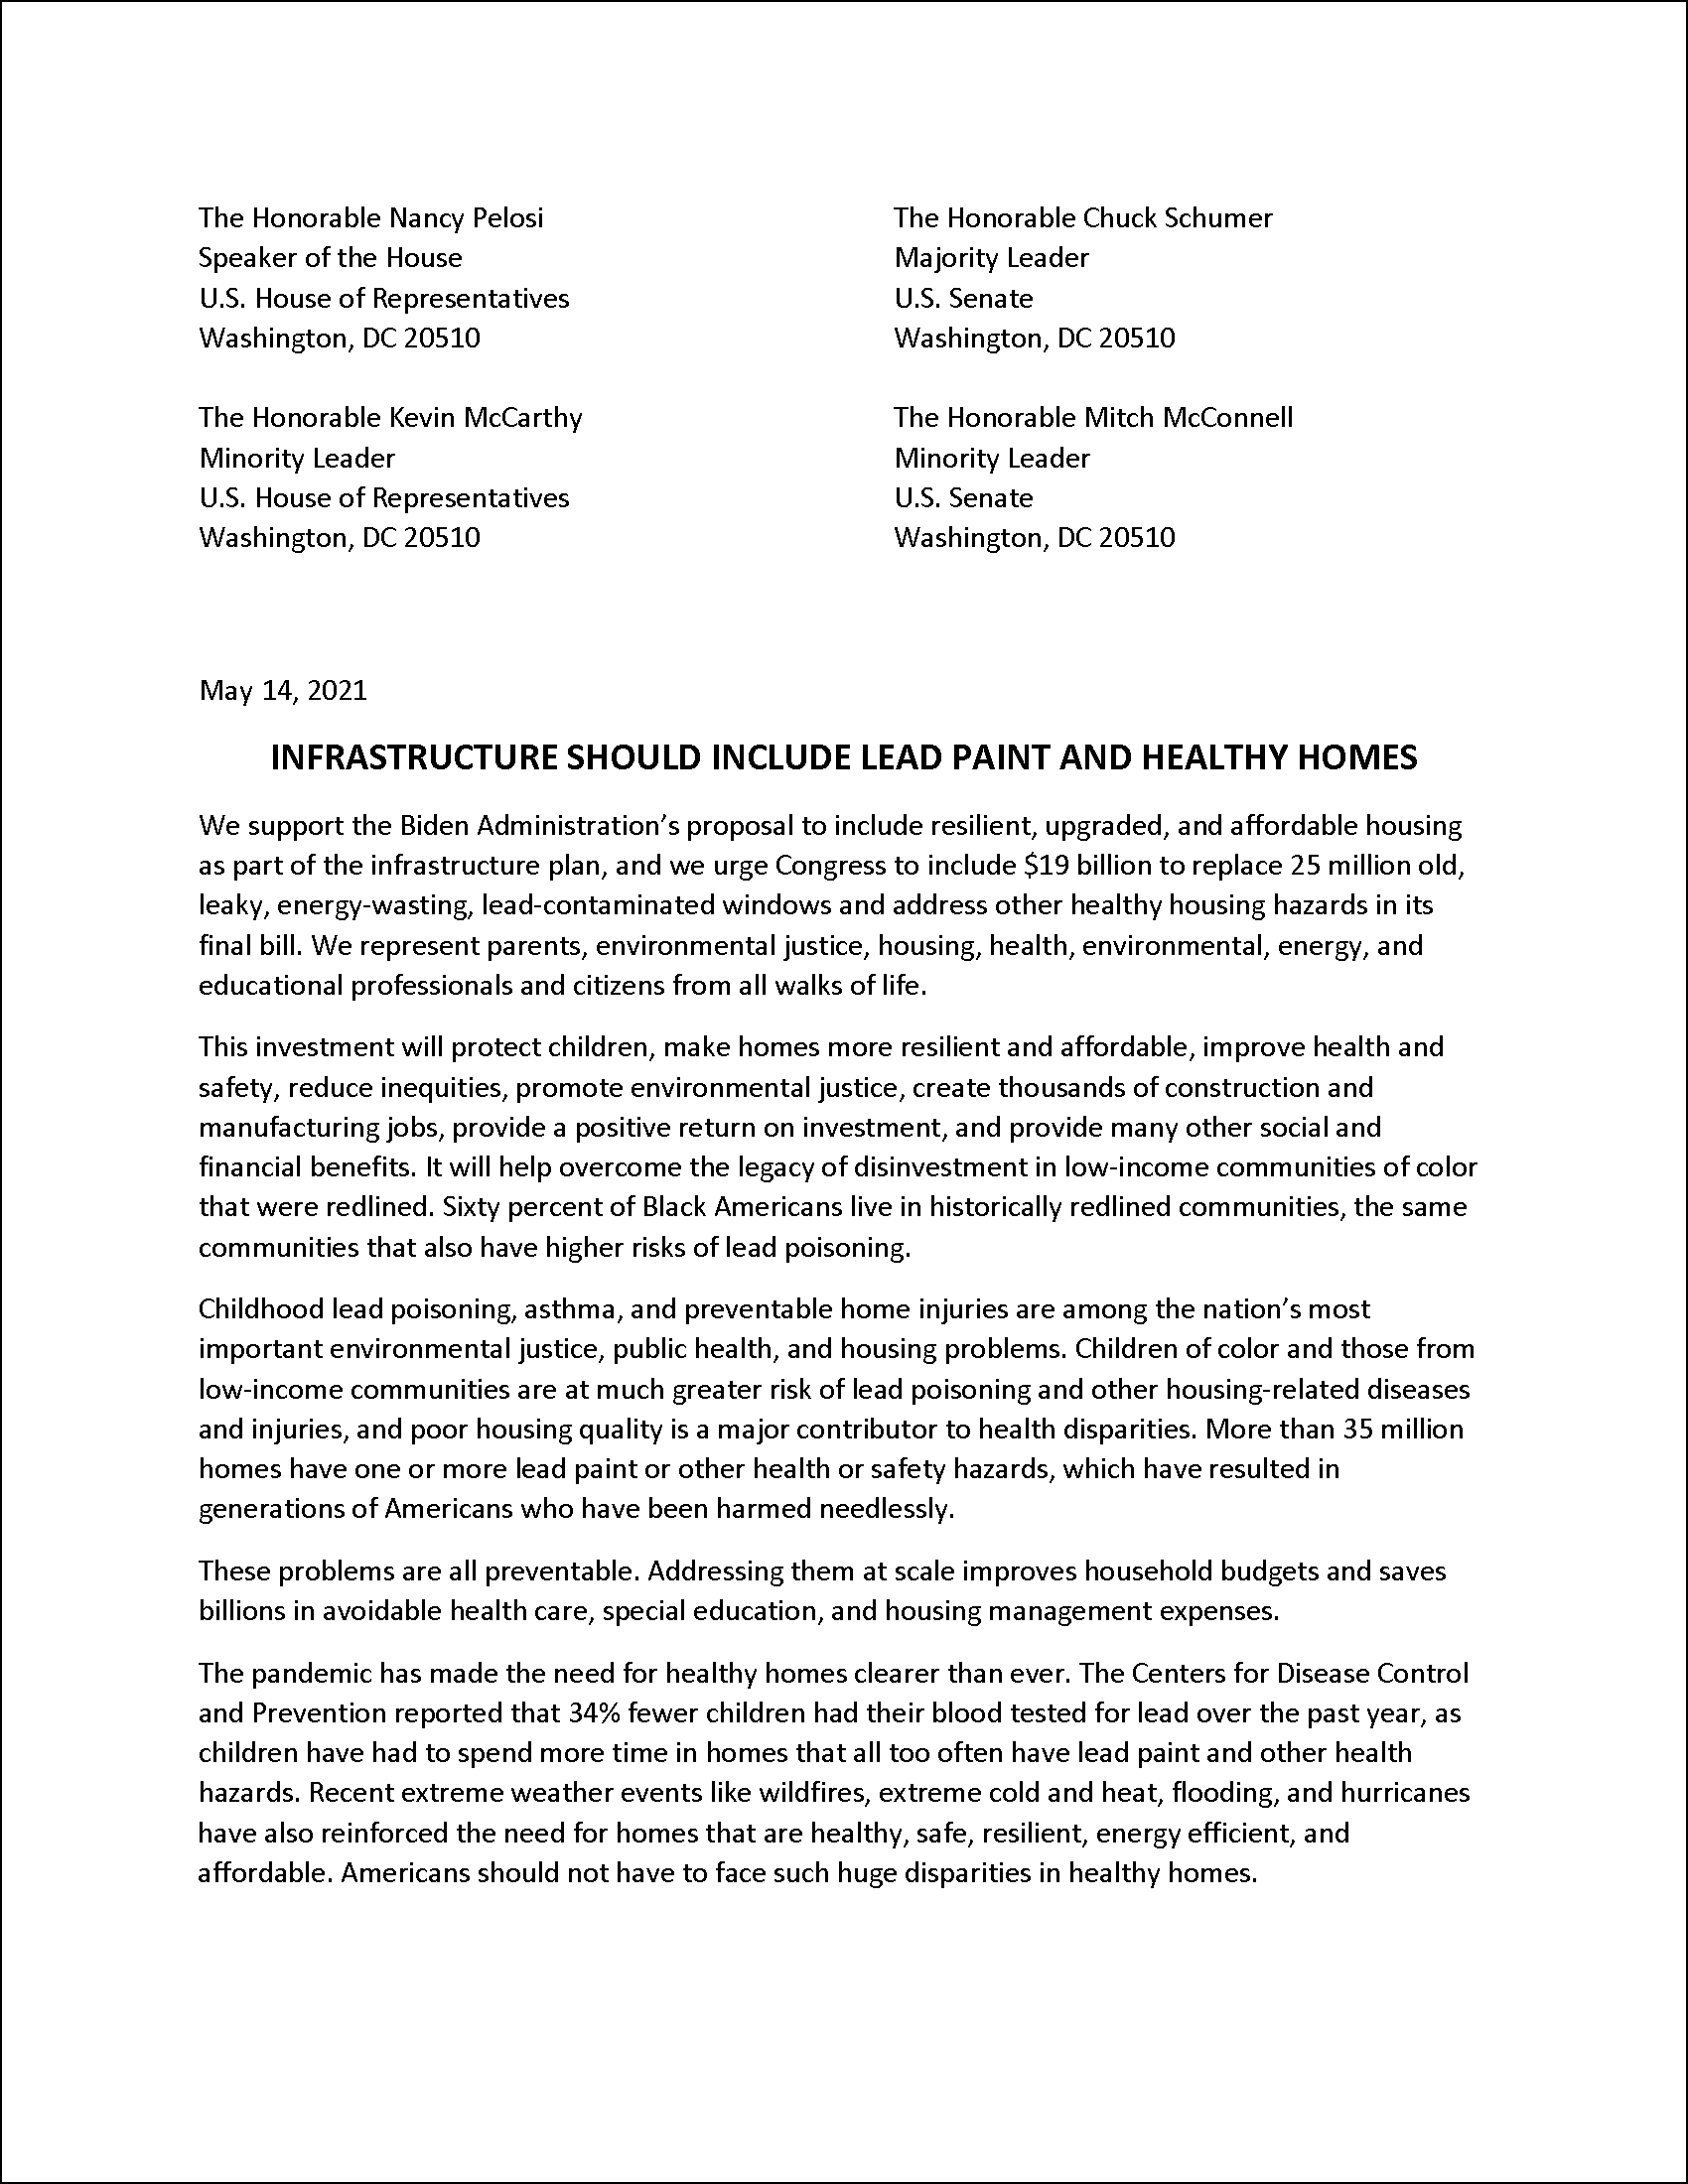 Letter to Congress on Infrastructure, Lead, and Healthy Homes